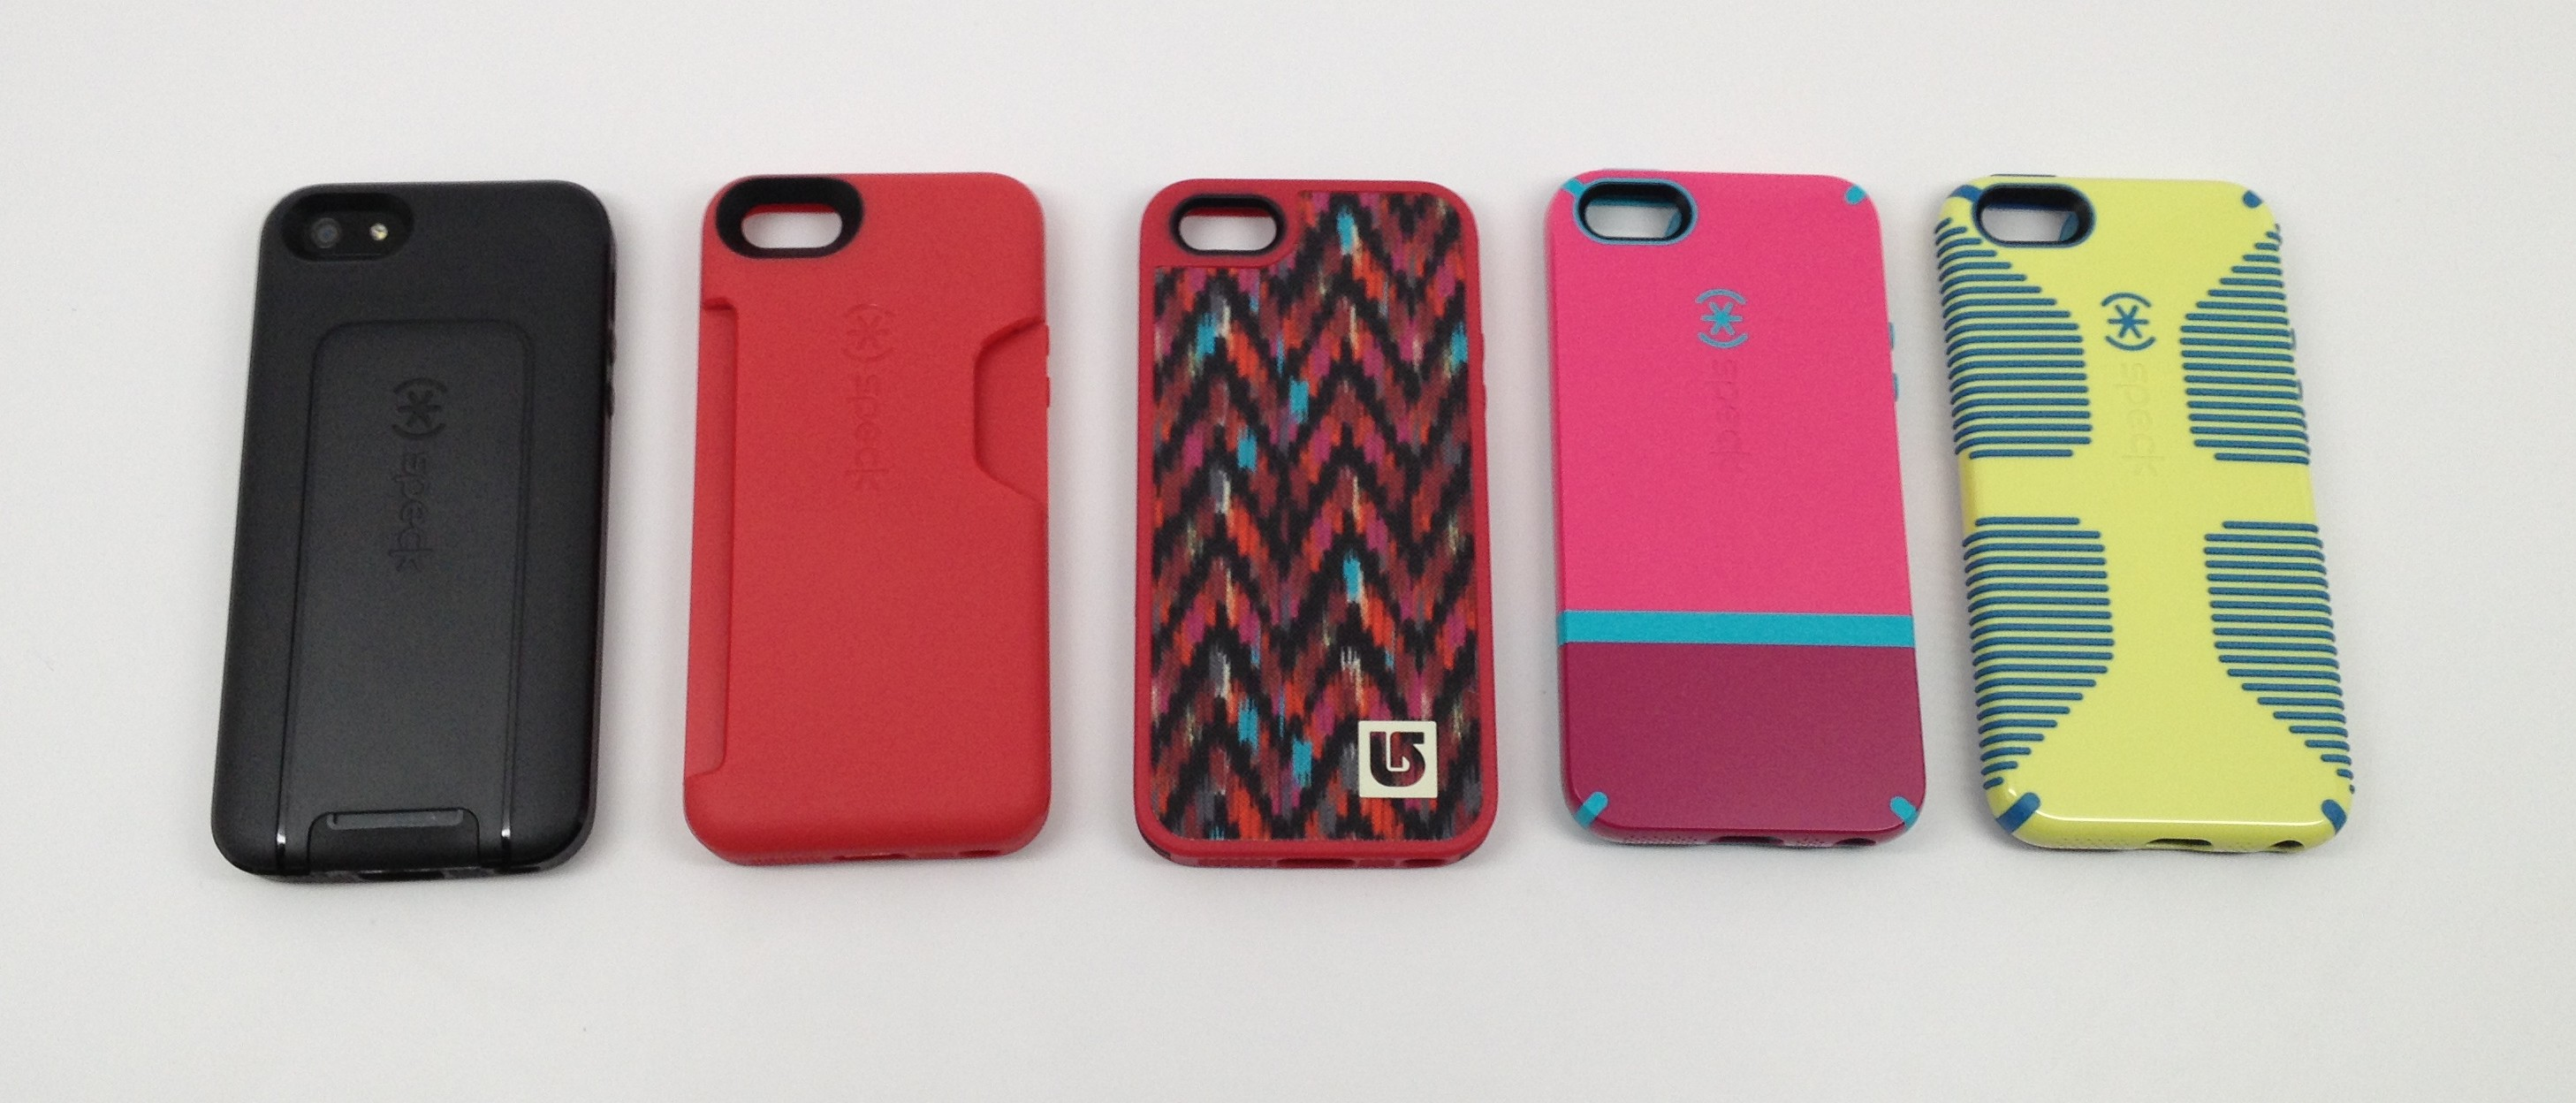 speck iphone 5 cases speck iphone 5 cases offer wallets kickstands and color 3750